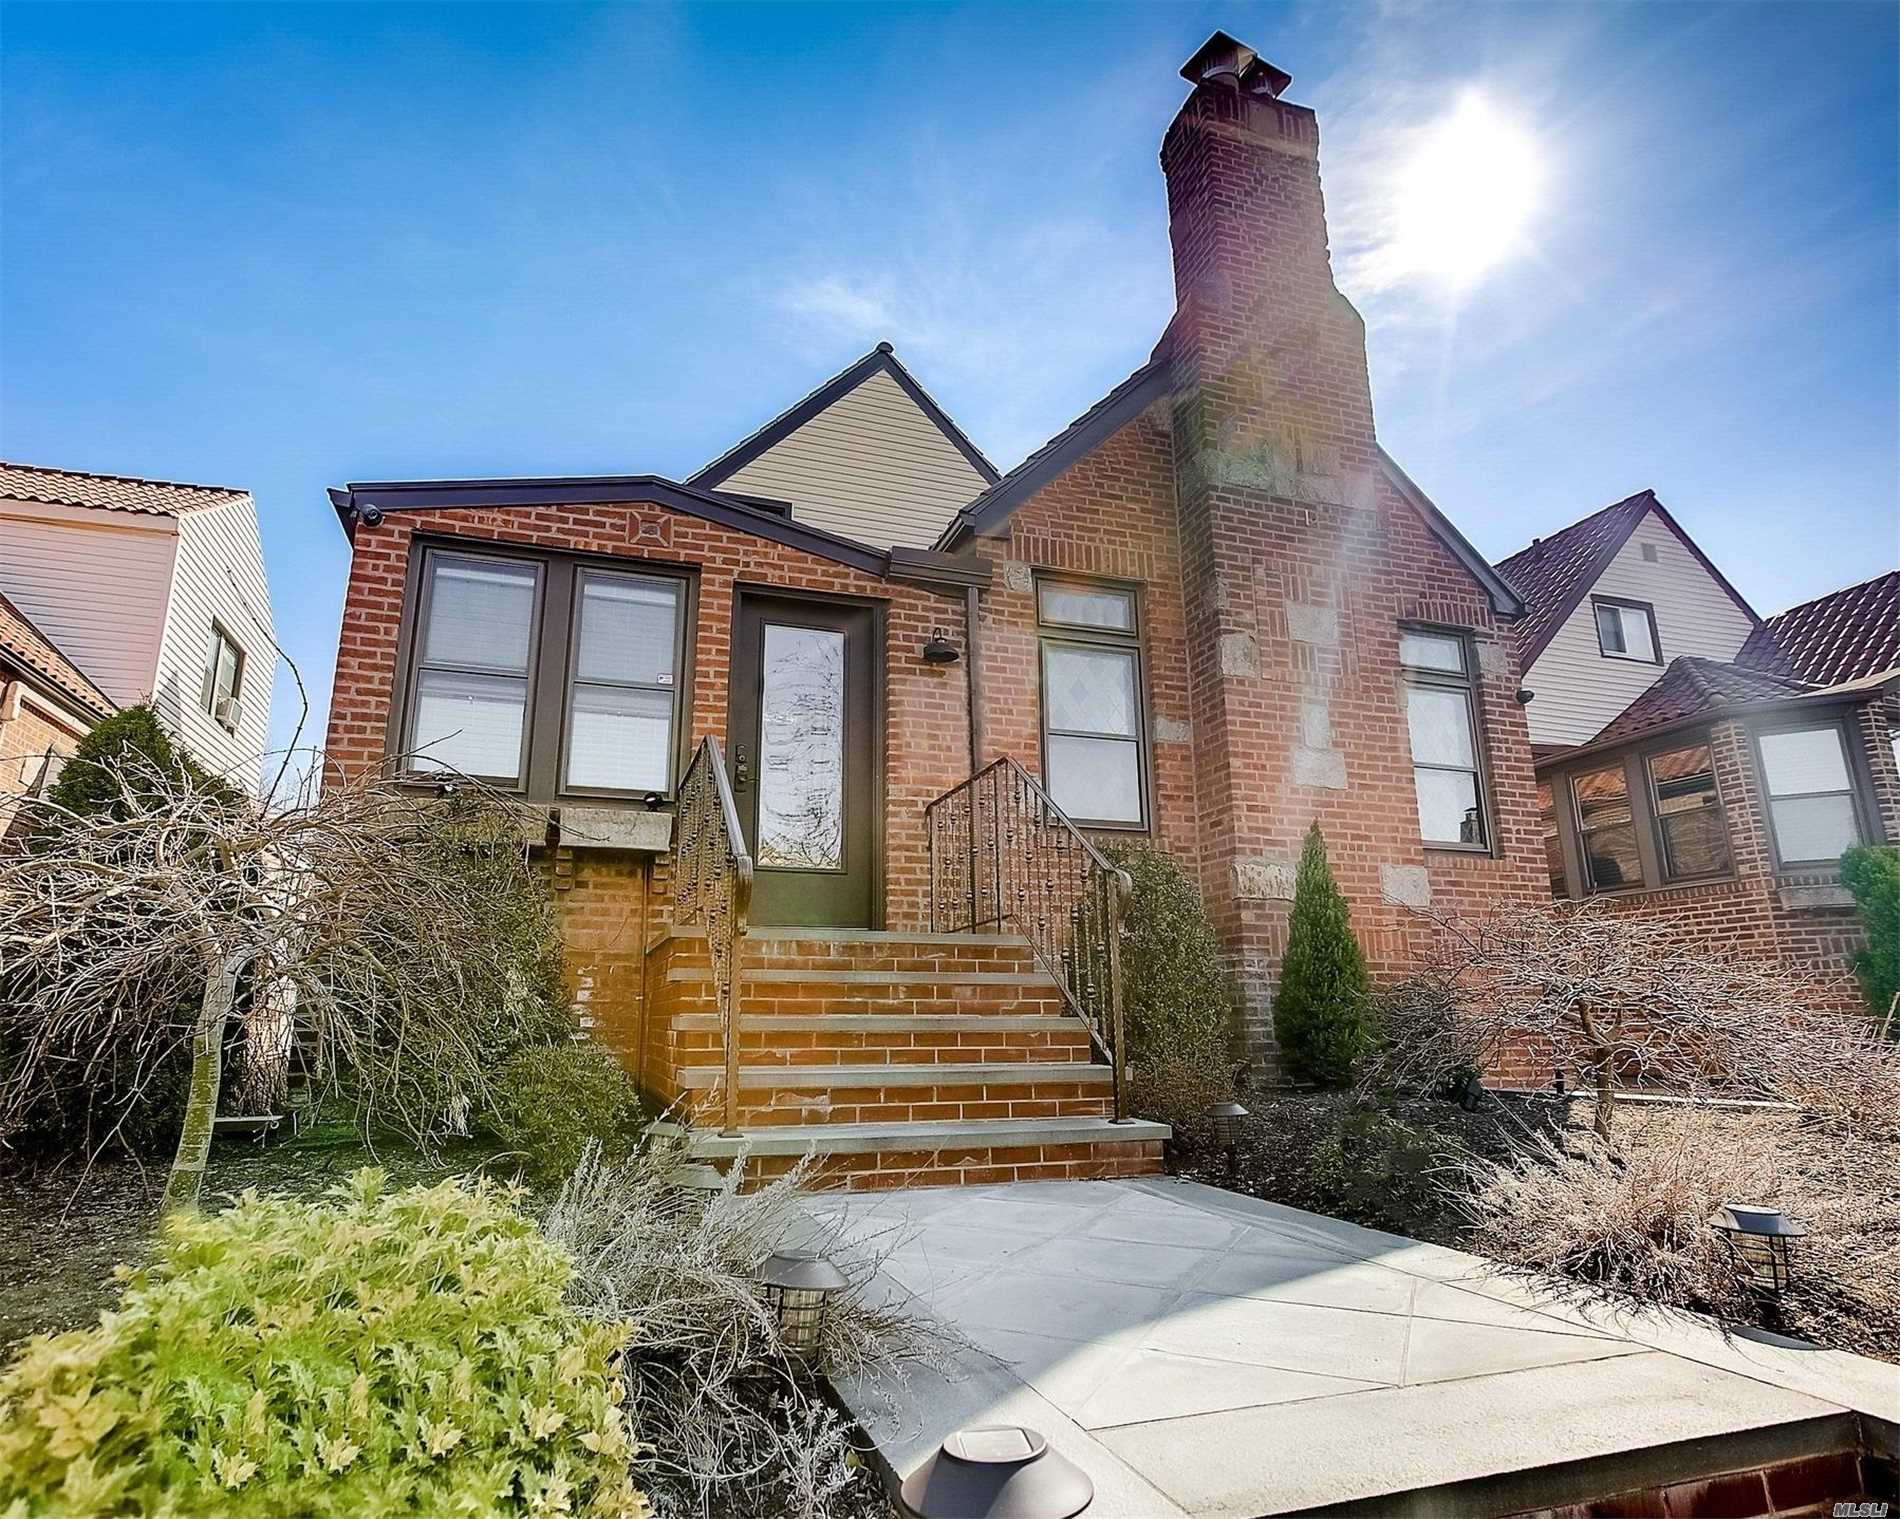 Gorgeous two family, consisting of main duplex, plus upper floor rental. Much loved, beautifully renovated and meticulously maintained. Touches of original charm and grandeur with details of stain-glass windows, 12 foot ceiling and moldings. Modern convenience of two gas fireplaces in the main living room and basement for cozy warmth and ambiance. Separate entrances to basement and upper rental; Main unit has entrance with spacious foyer. Fully paved backyard with privacy fence.